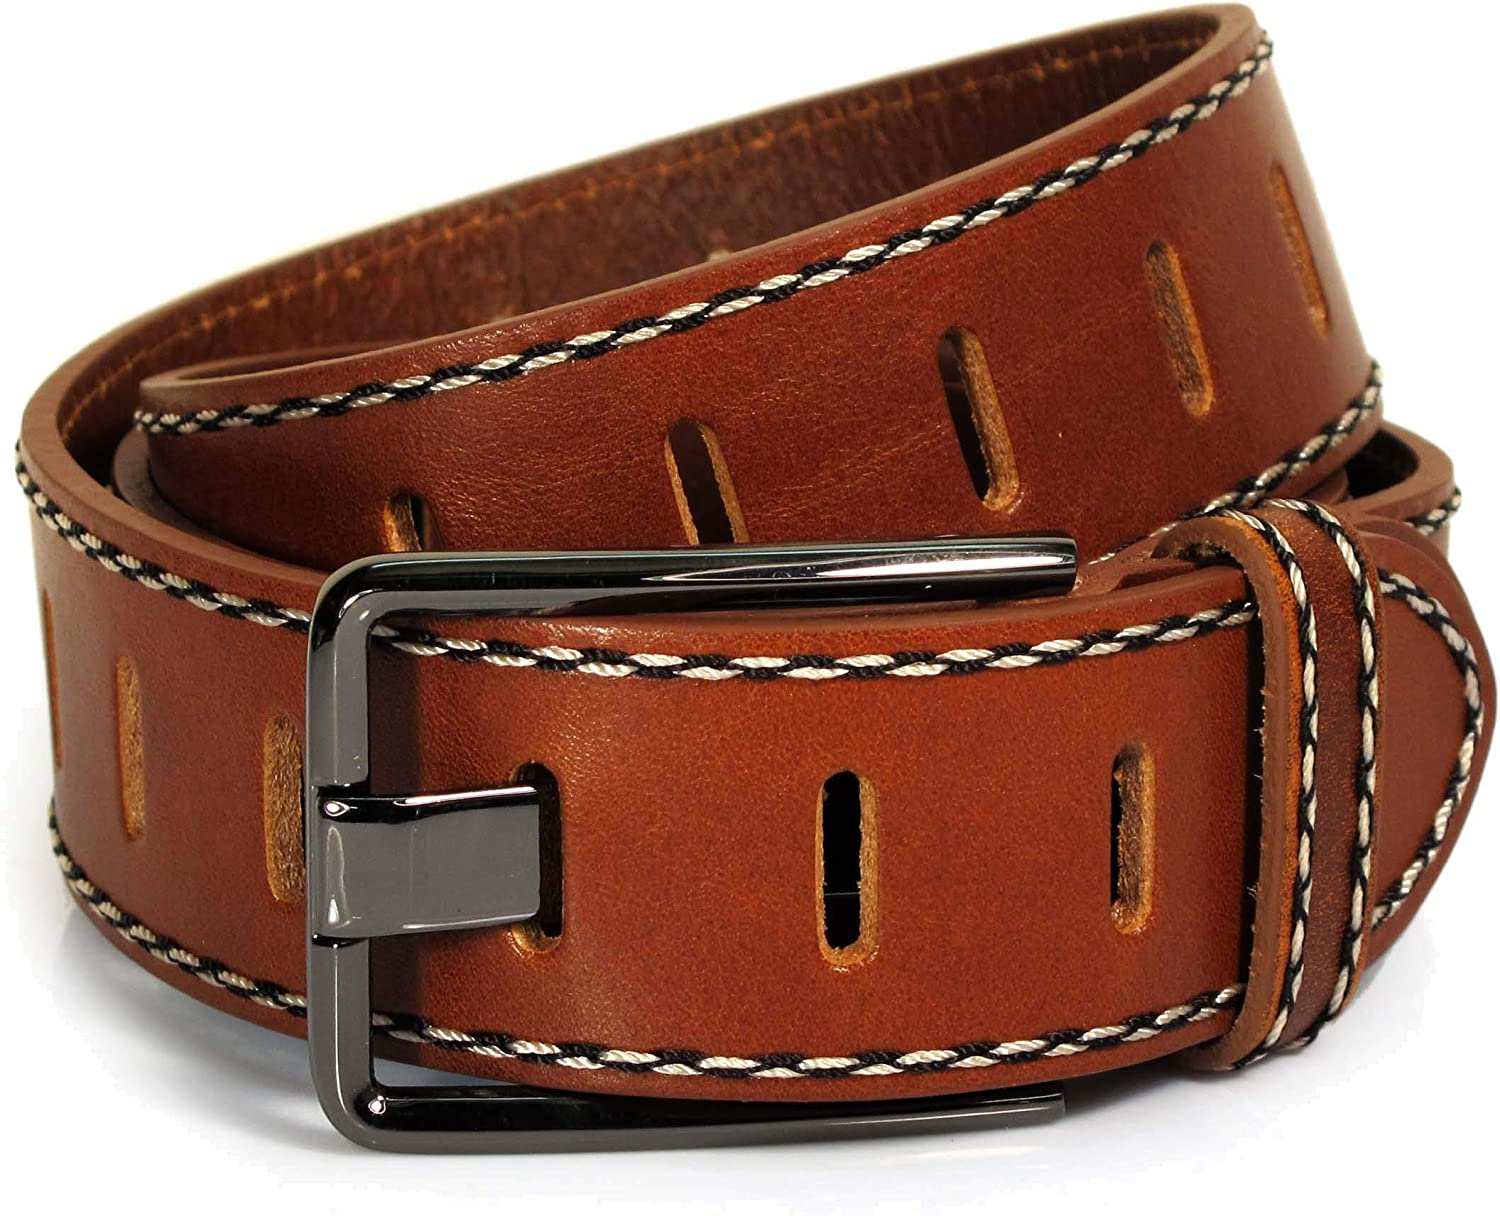 UM5 Mens Real Genuine Leather Tan Brown Belt 1.5 Wide S-L Thick Casual Jeans